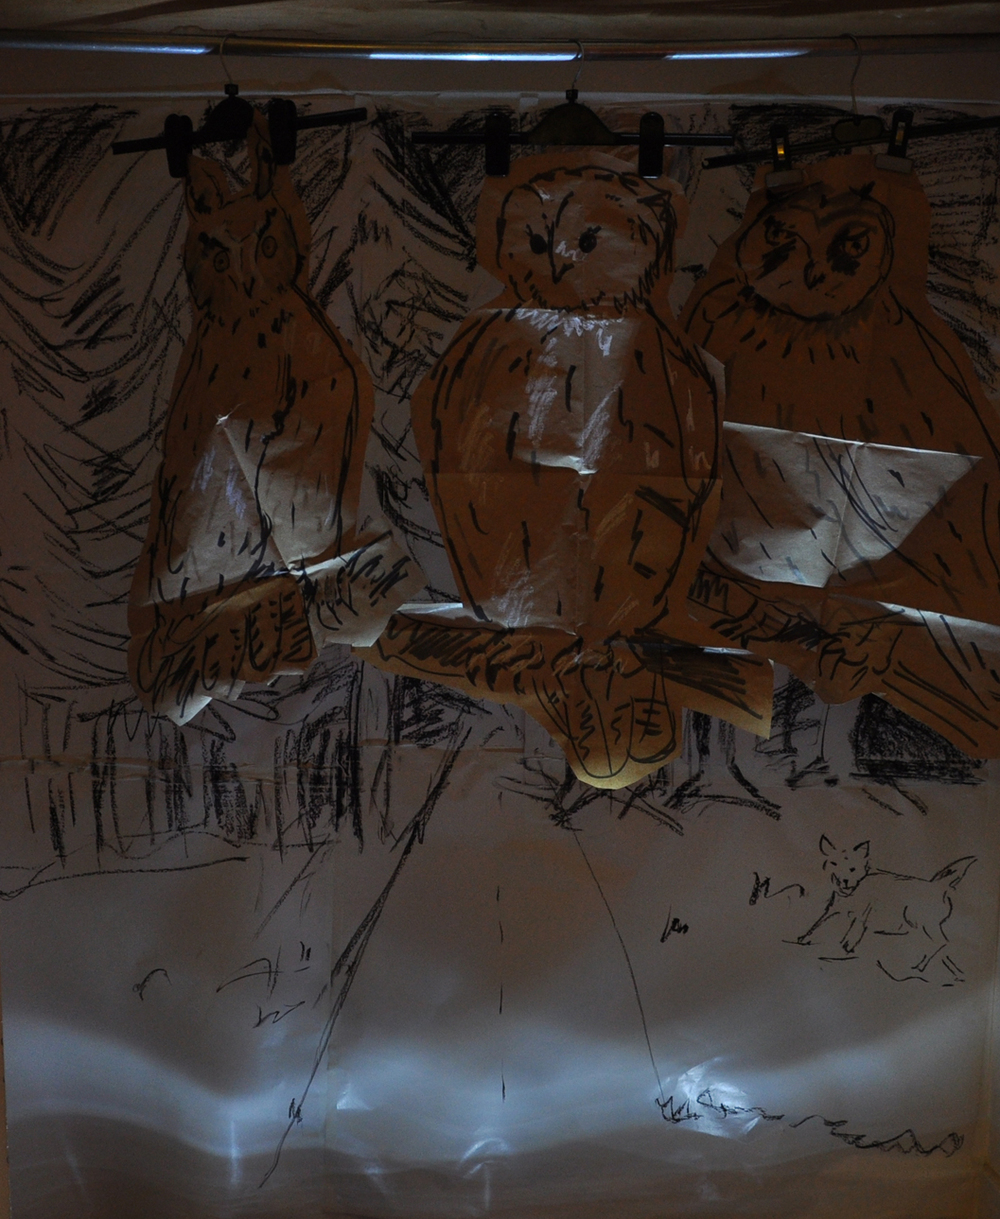 DSC_0188 three owls in dark sml.jpg